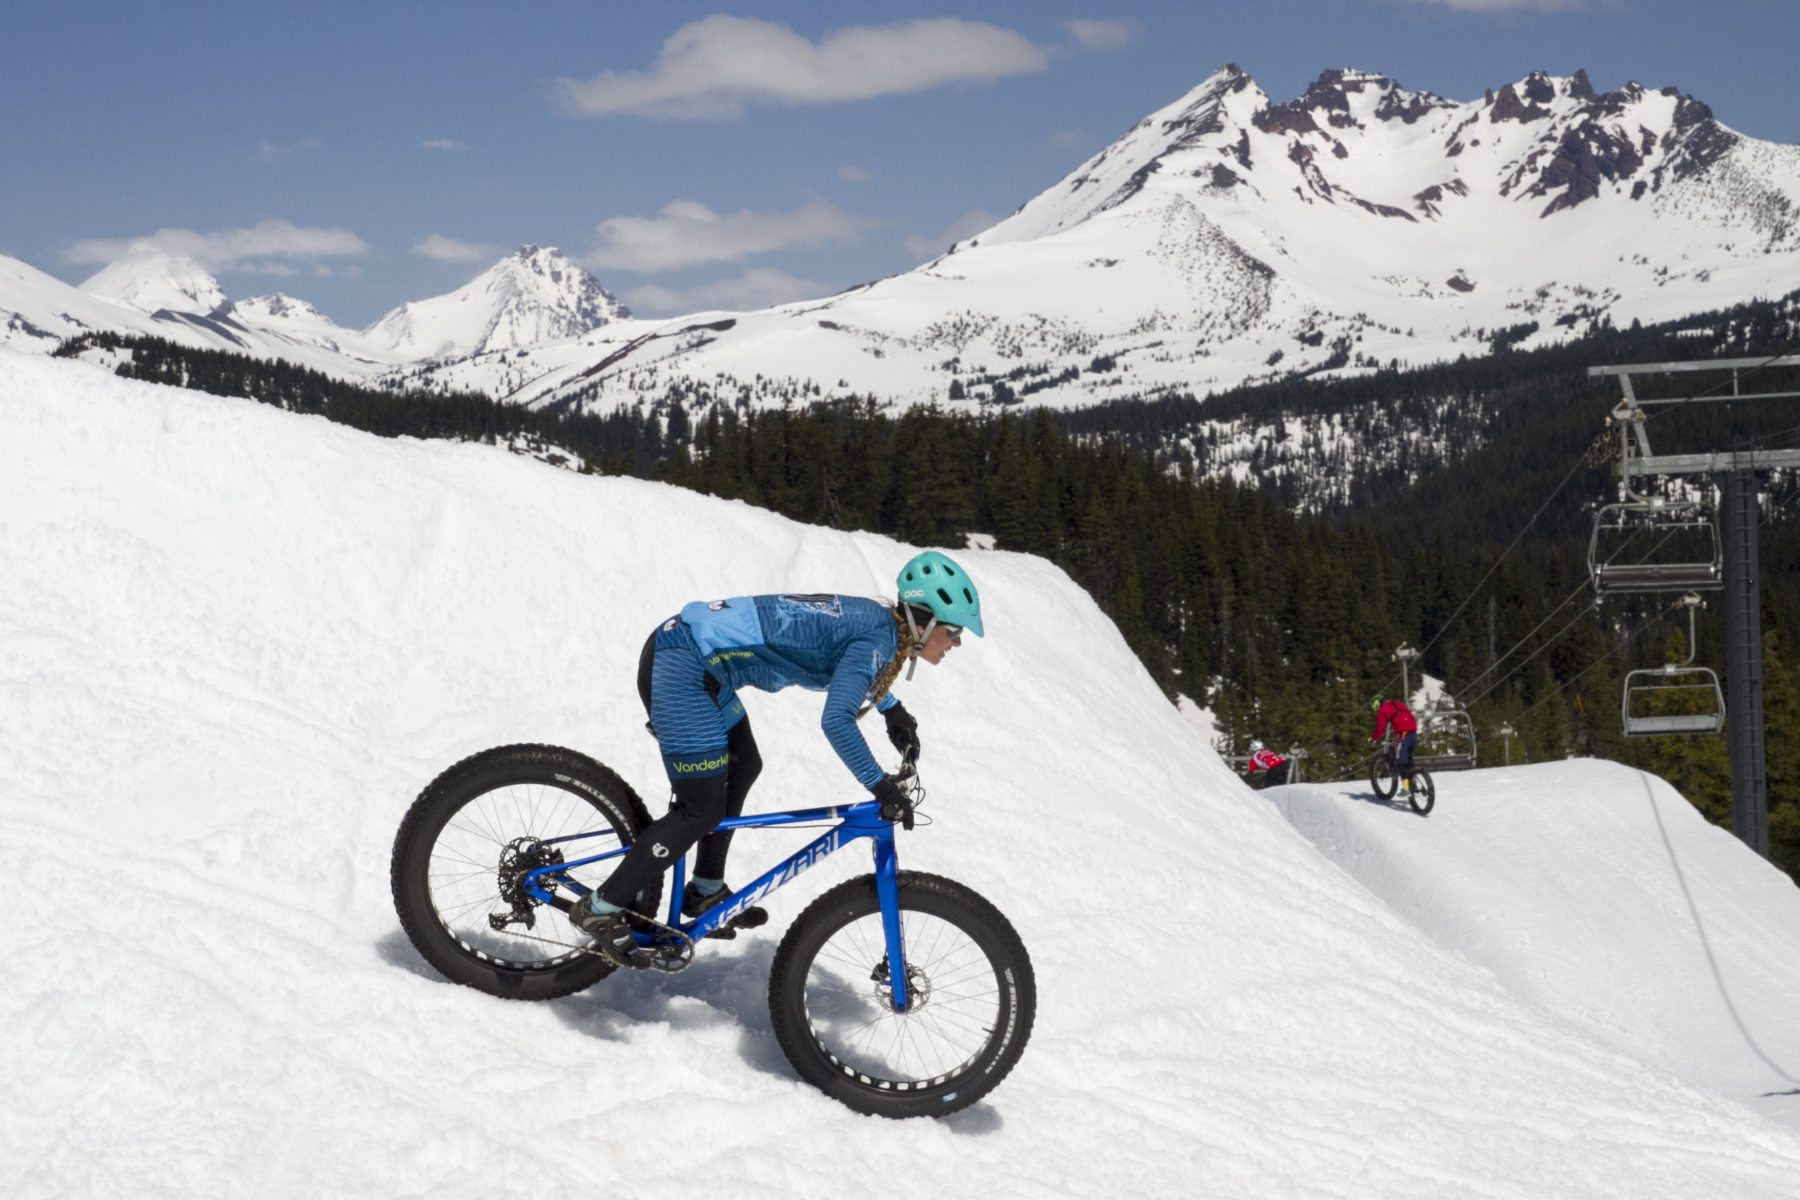 Emma Maaranen descends an alpine slope in the snow on her fat bike